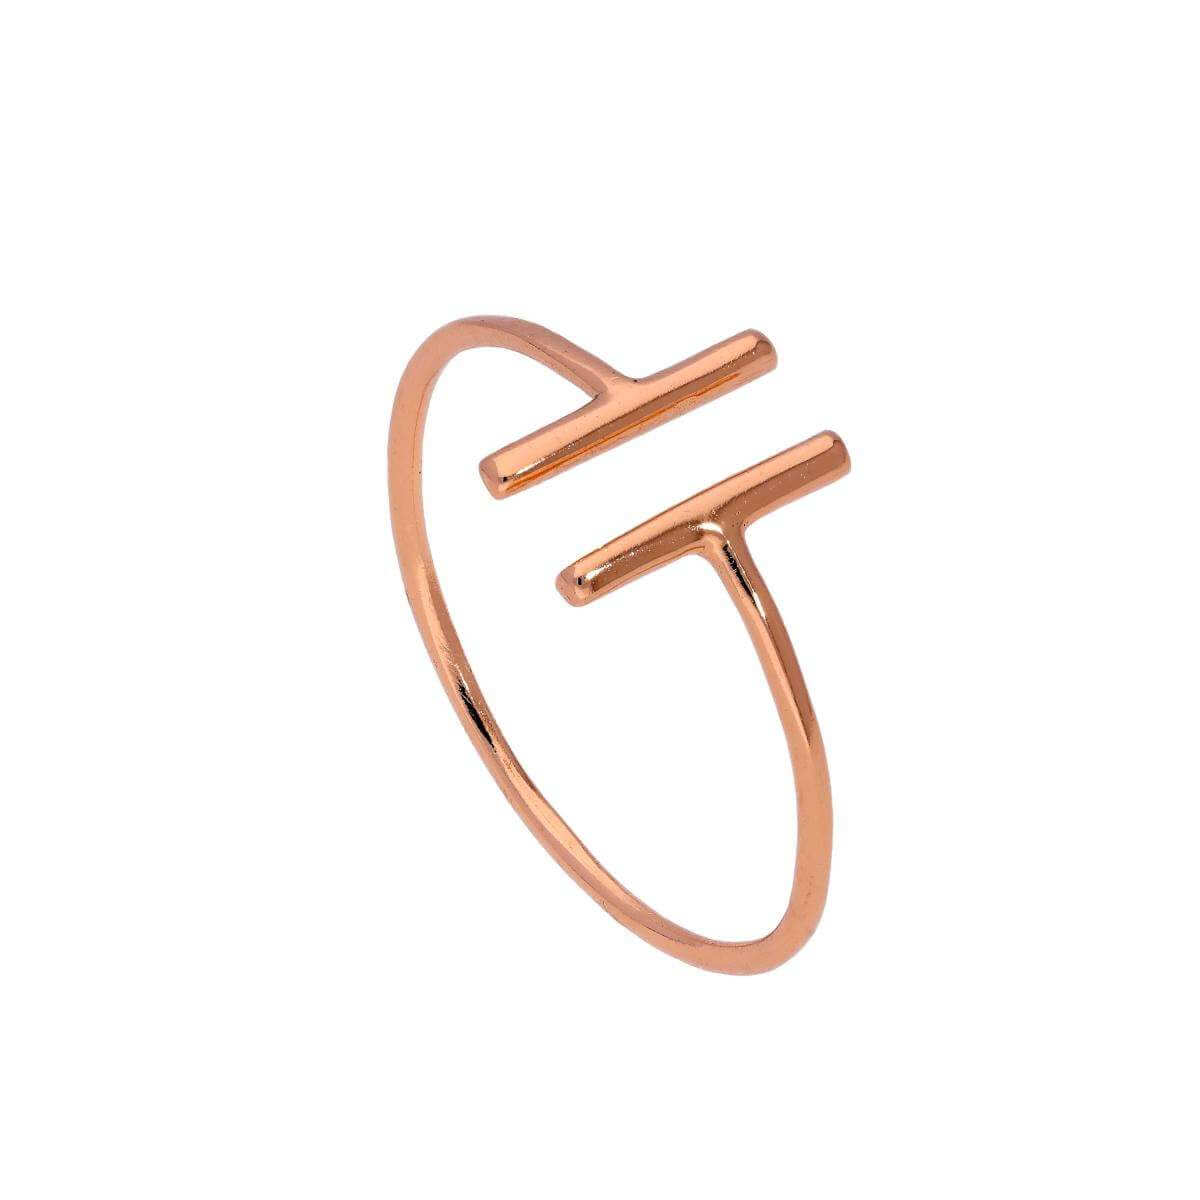 Rose Gold Plated Sterling Silver Bar Ring Size J - W